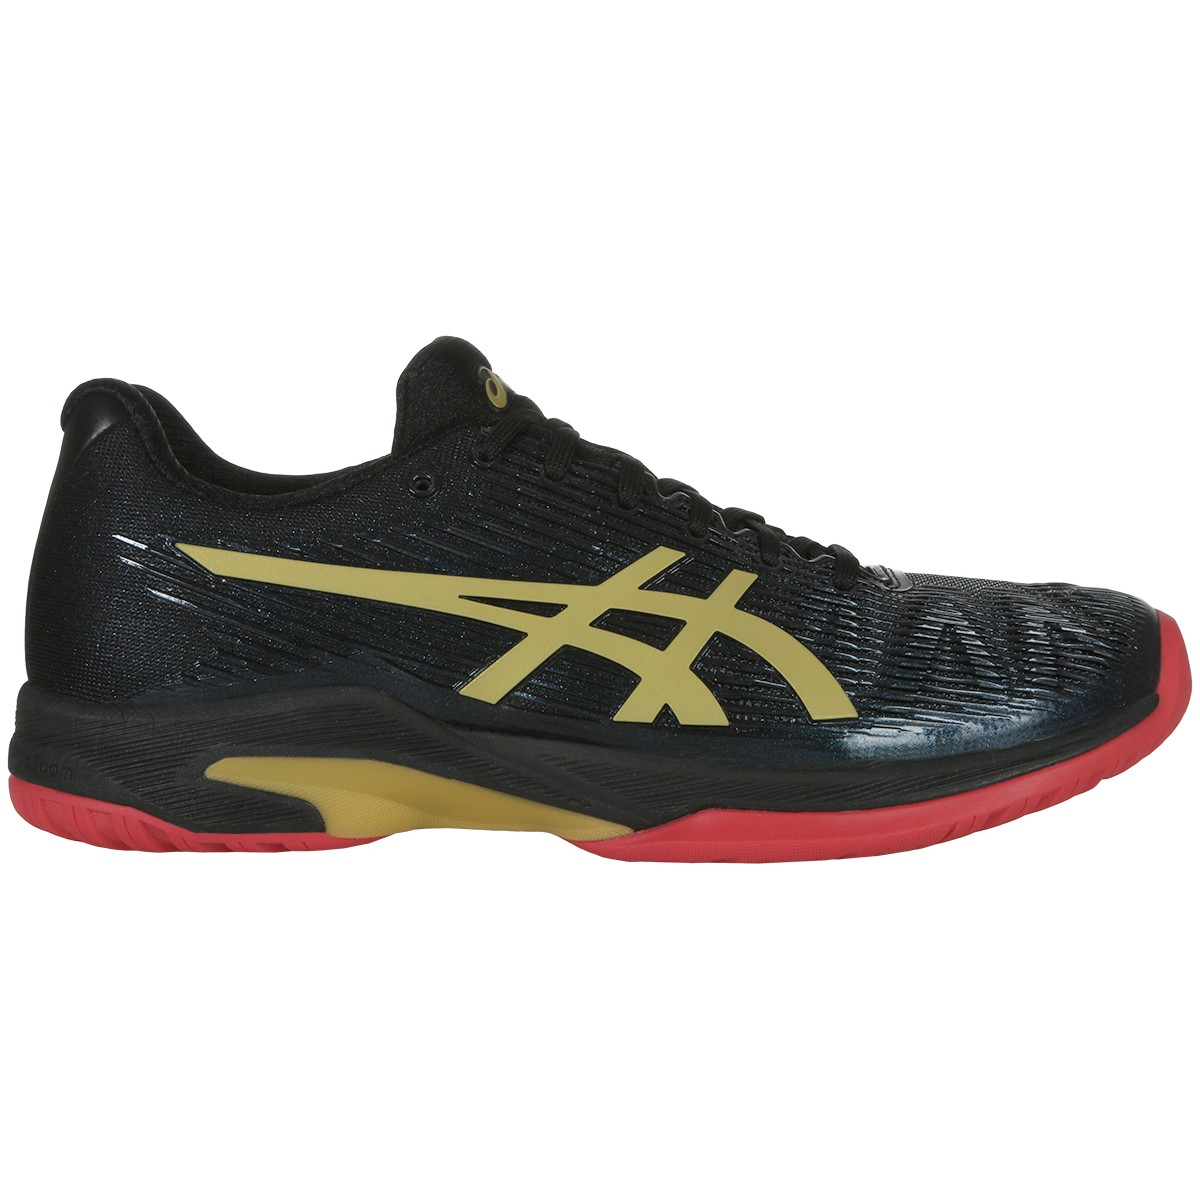 CHAUSSURES ASICS FEMME SOLUTION SPEED EXCLUSIVES TOUTES SURFACES